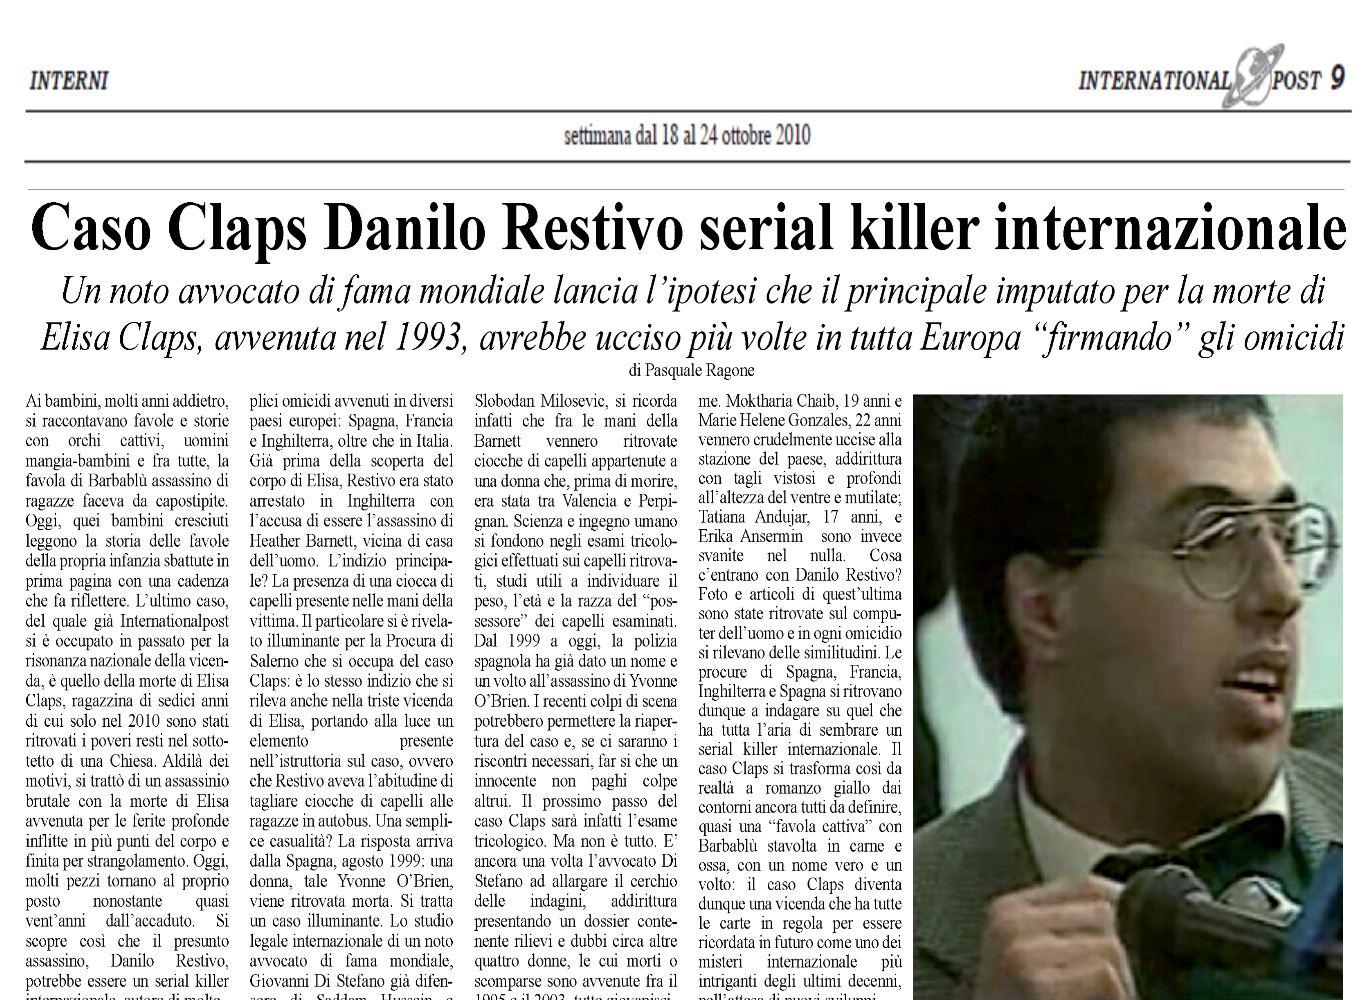 Restivo serial killer internazionale